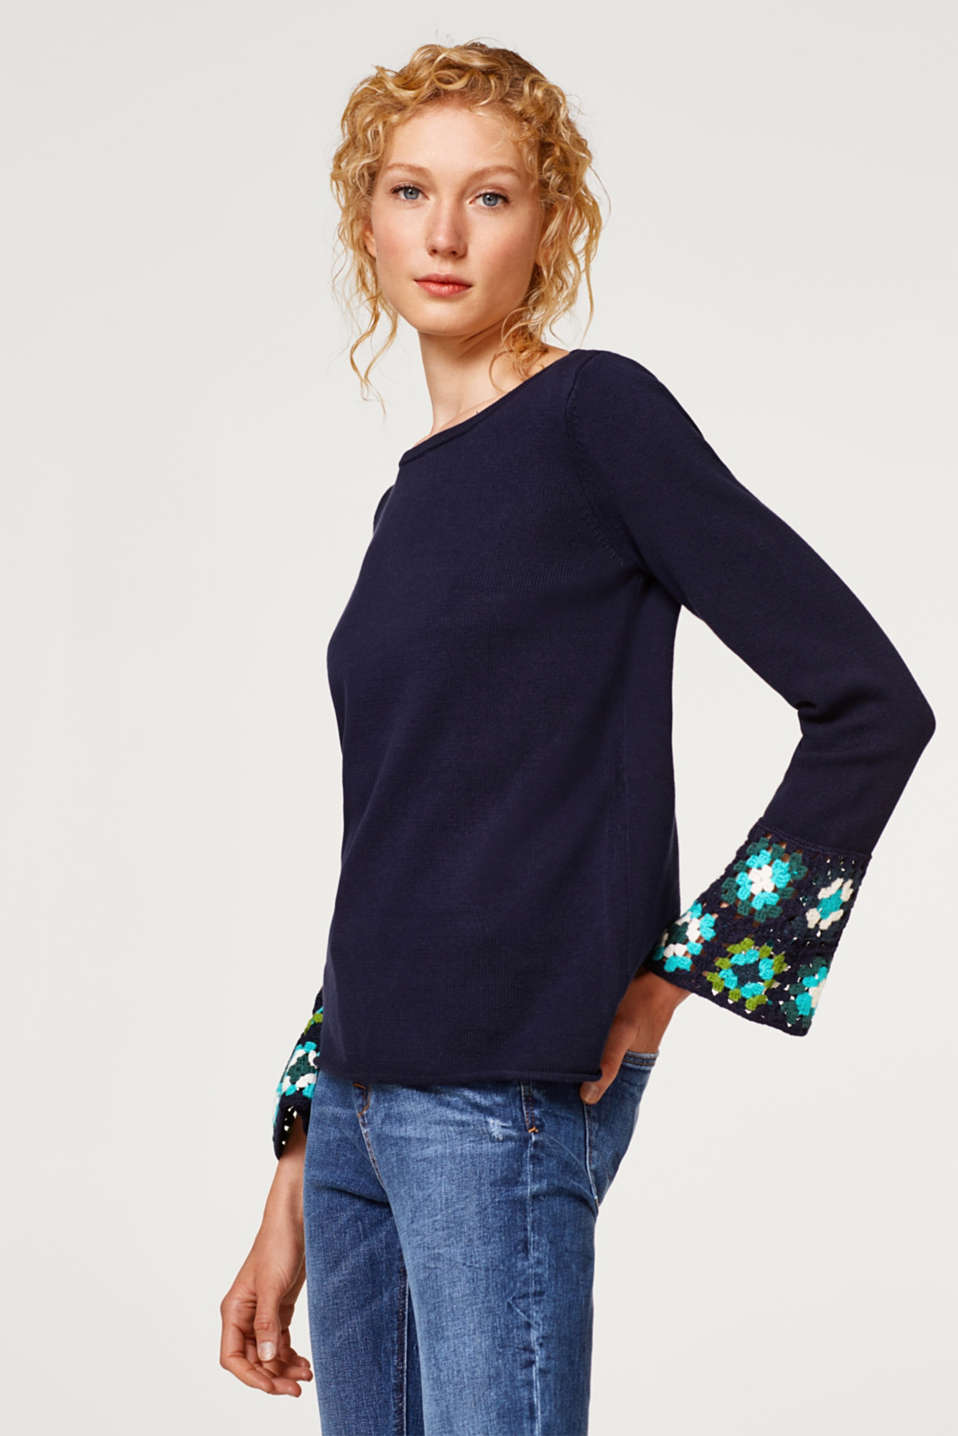 Esprit - Jumper with crocheted details, 100% cotton